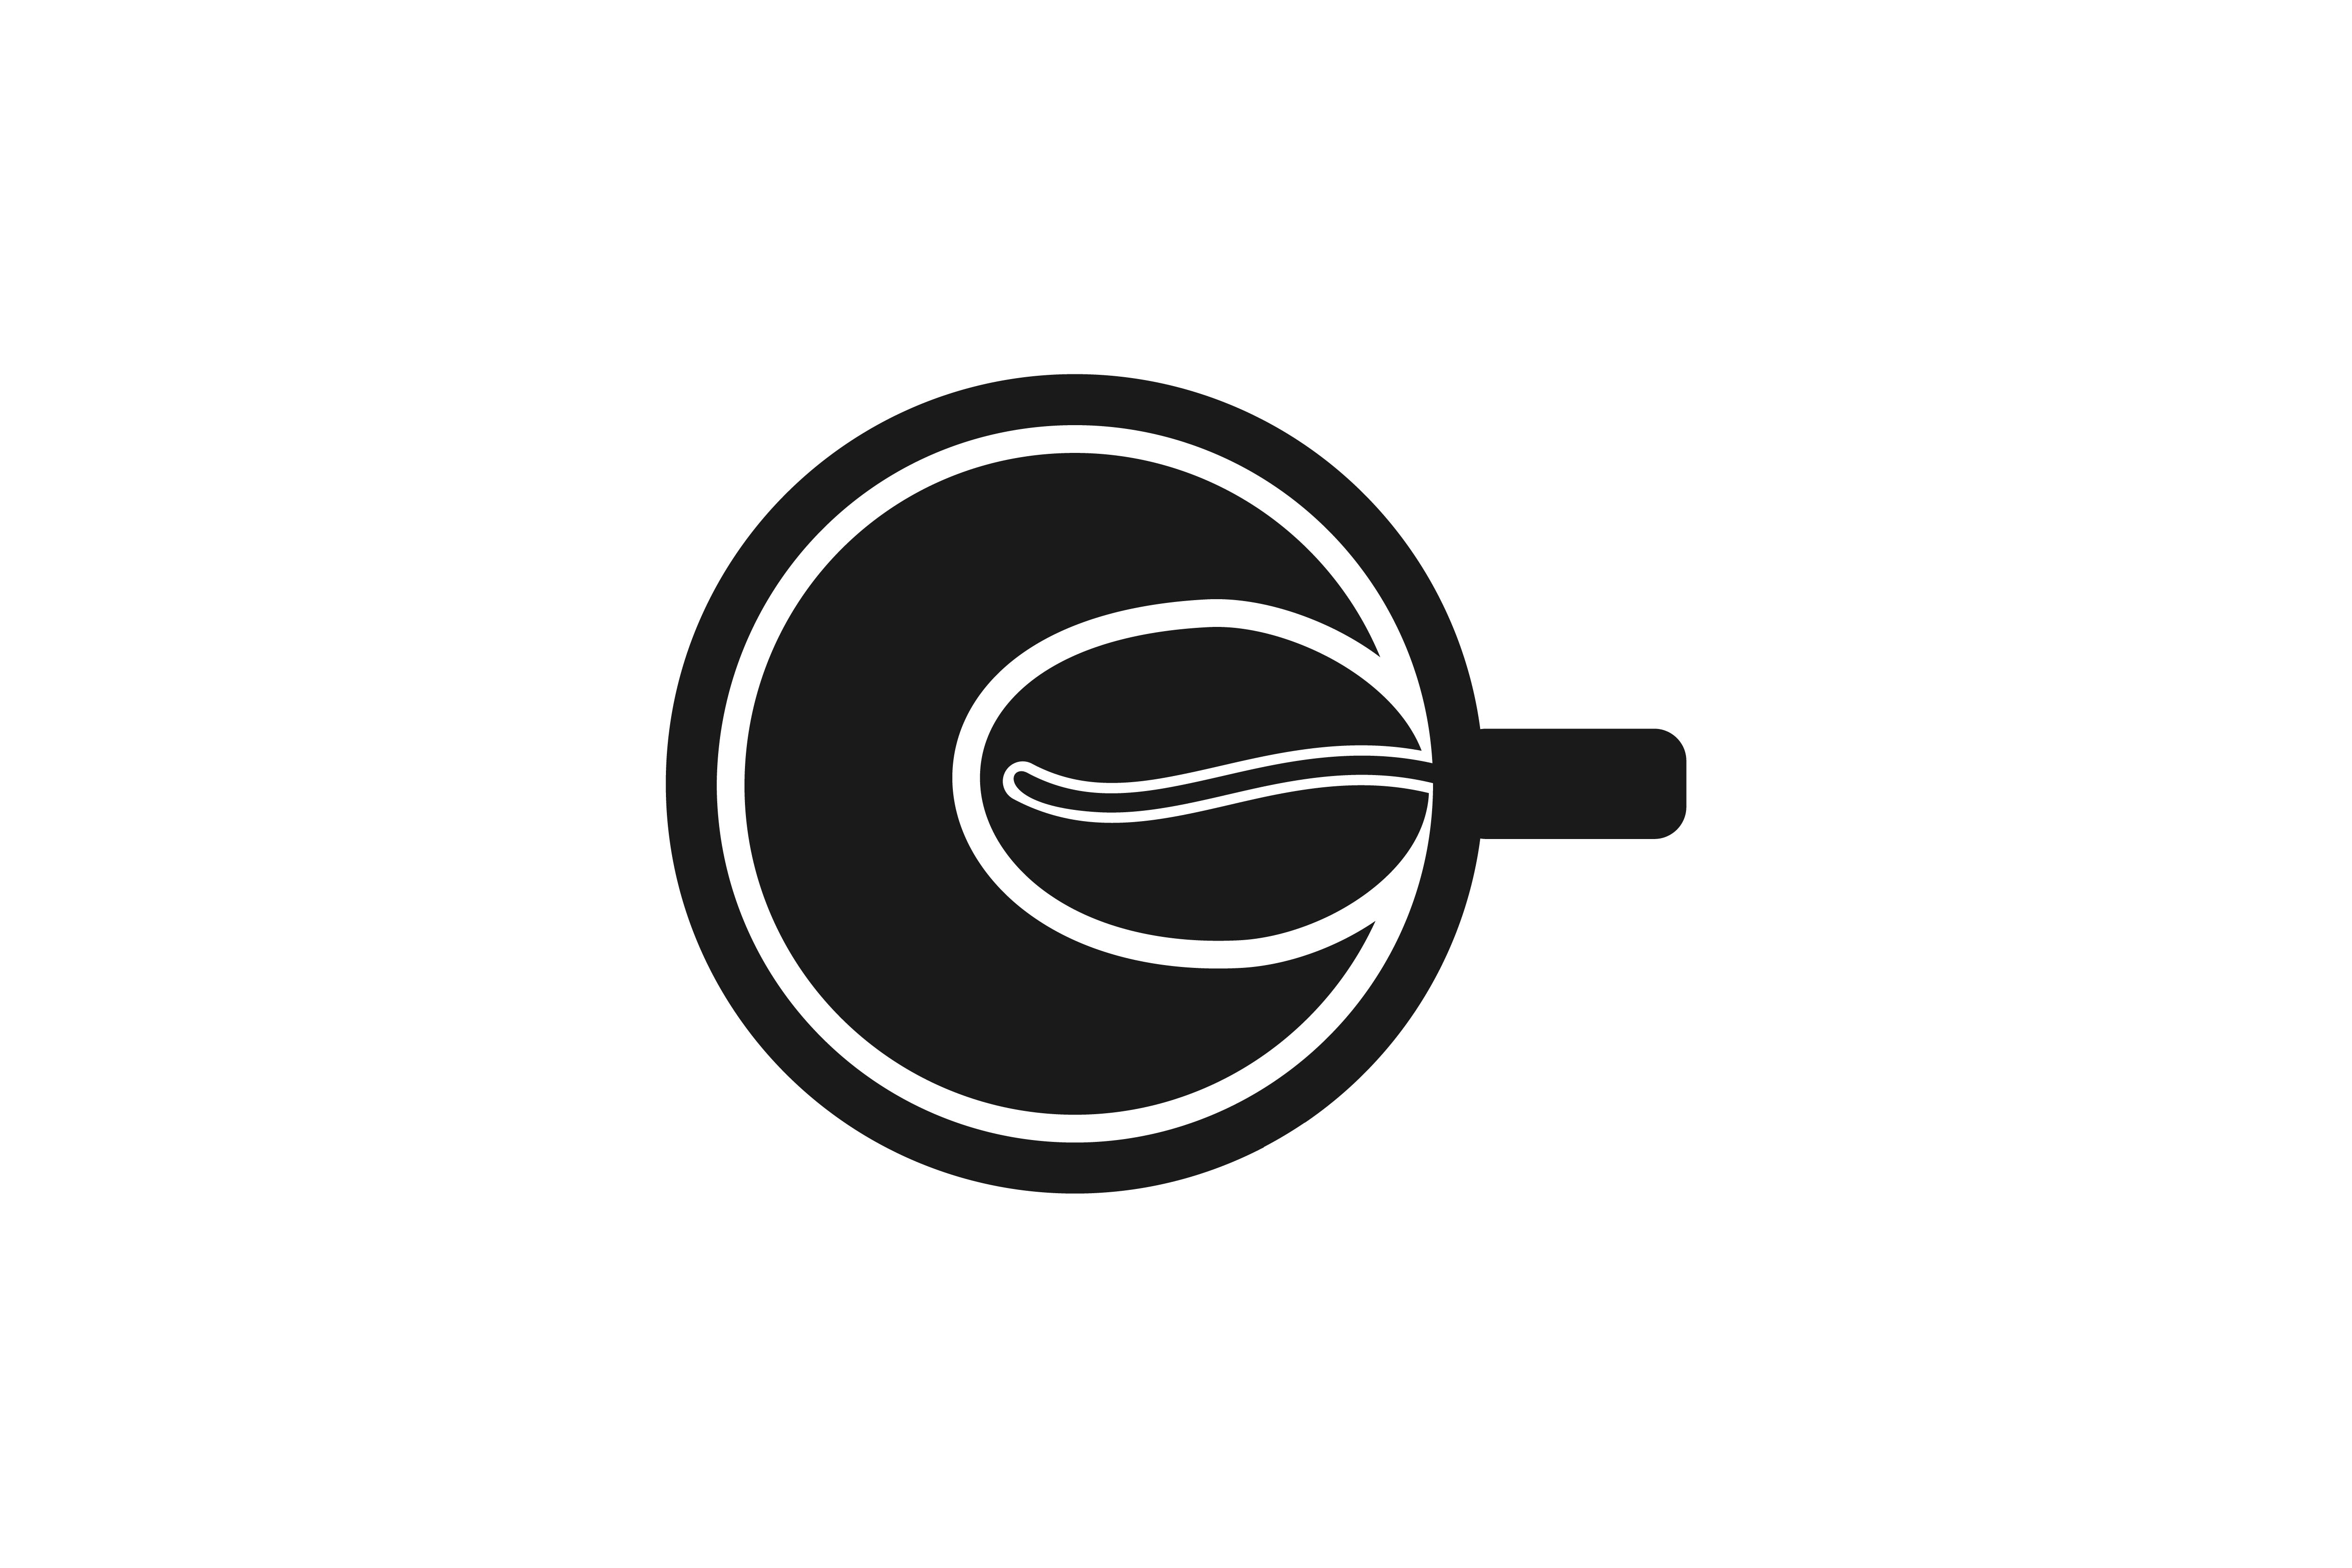 Download Free Cup And Coffee Bean Logo Graphic By Yahyaanasatokillah for Cricut Explore, Silhouette and other cutting machines.